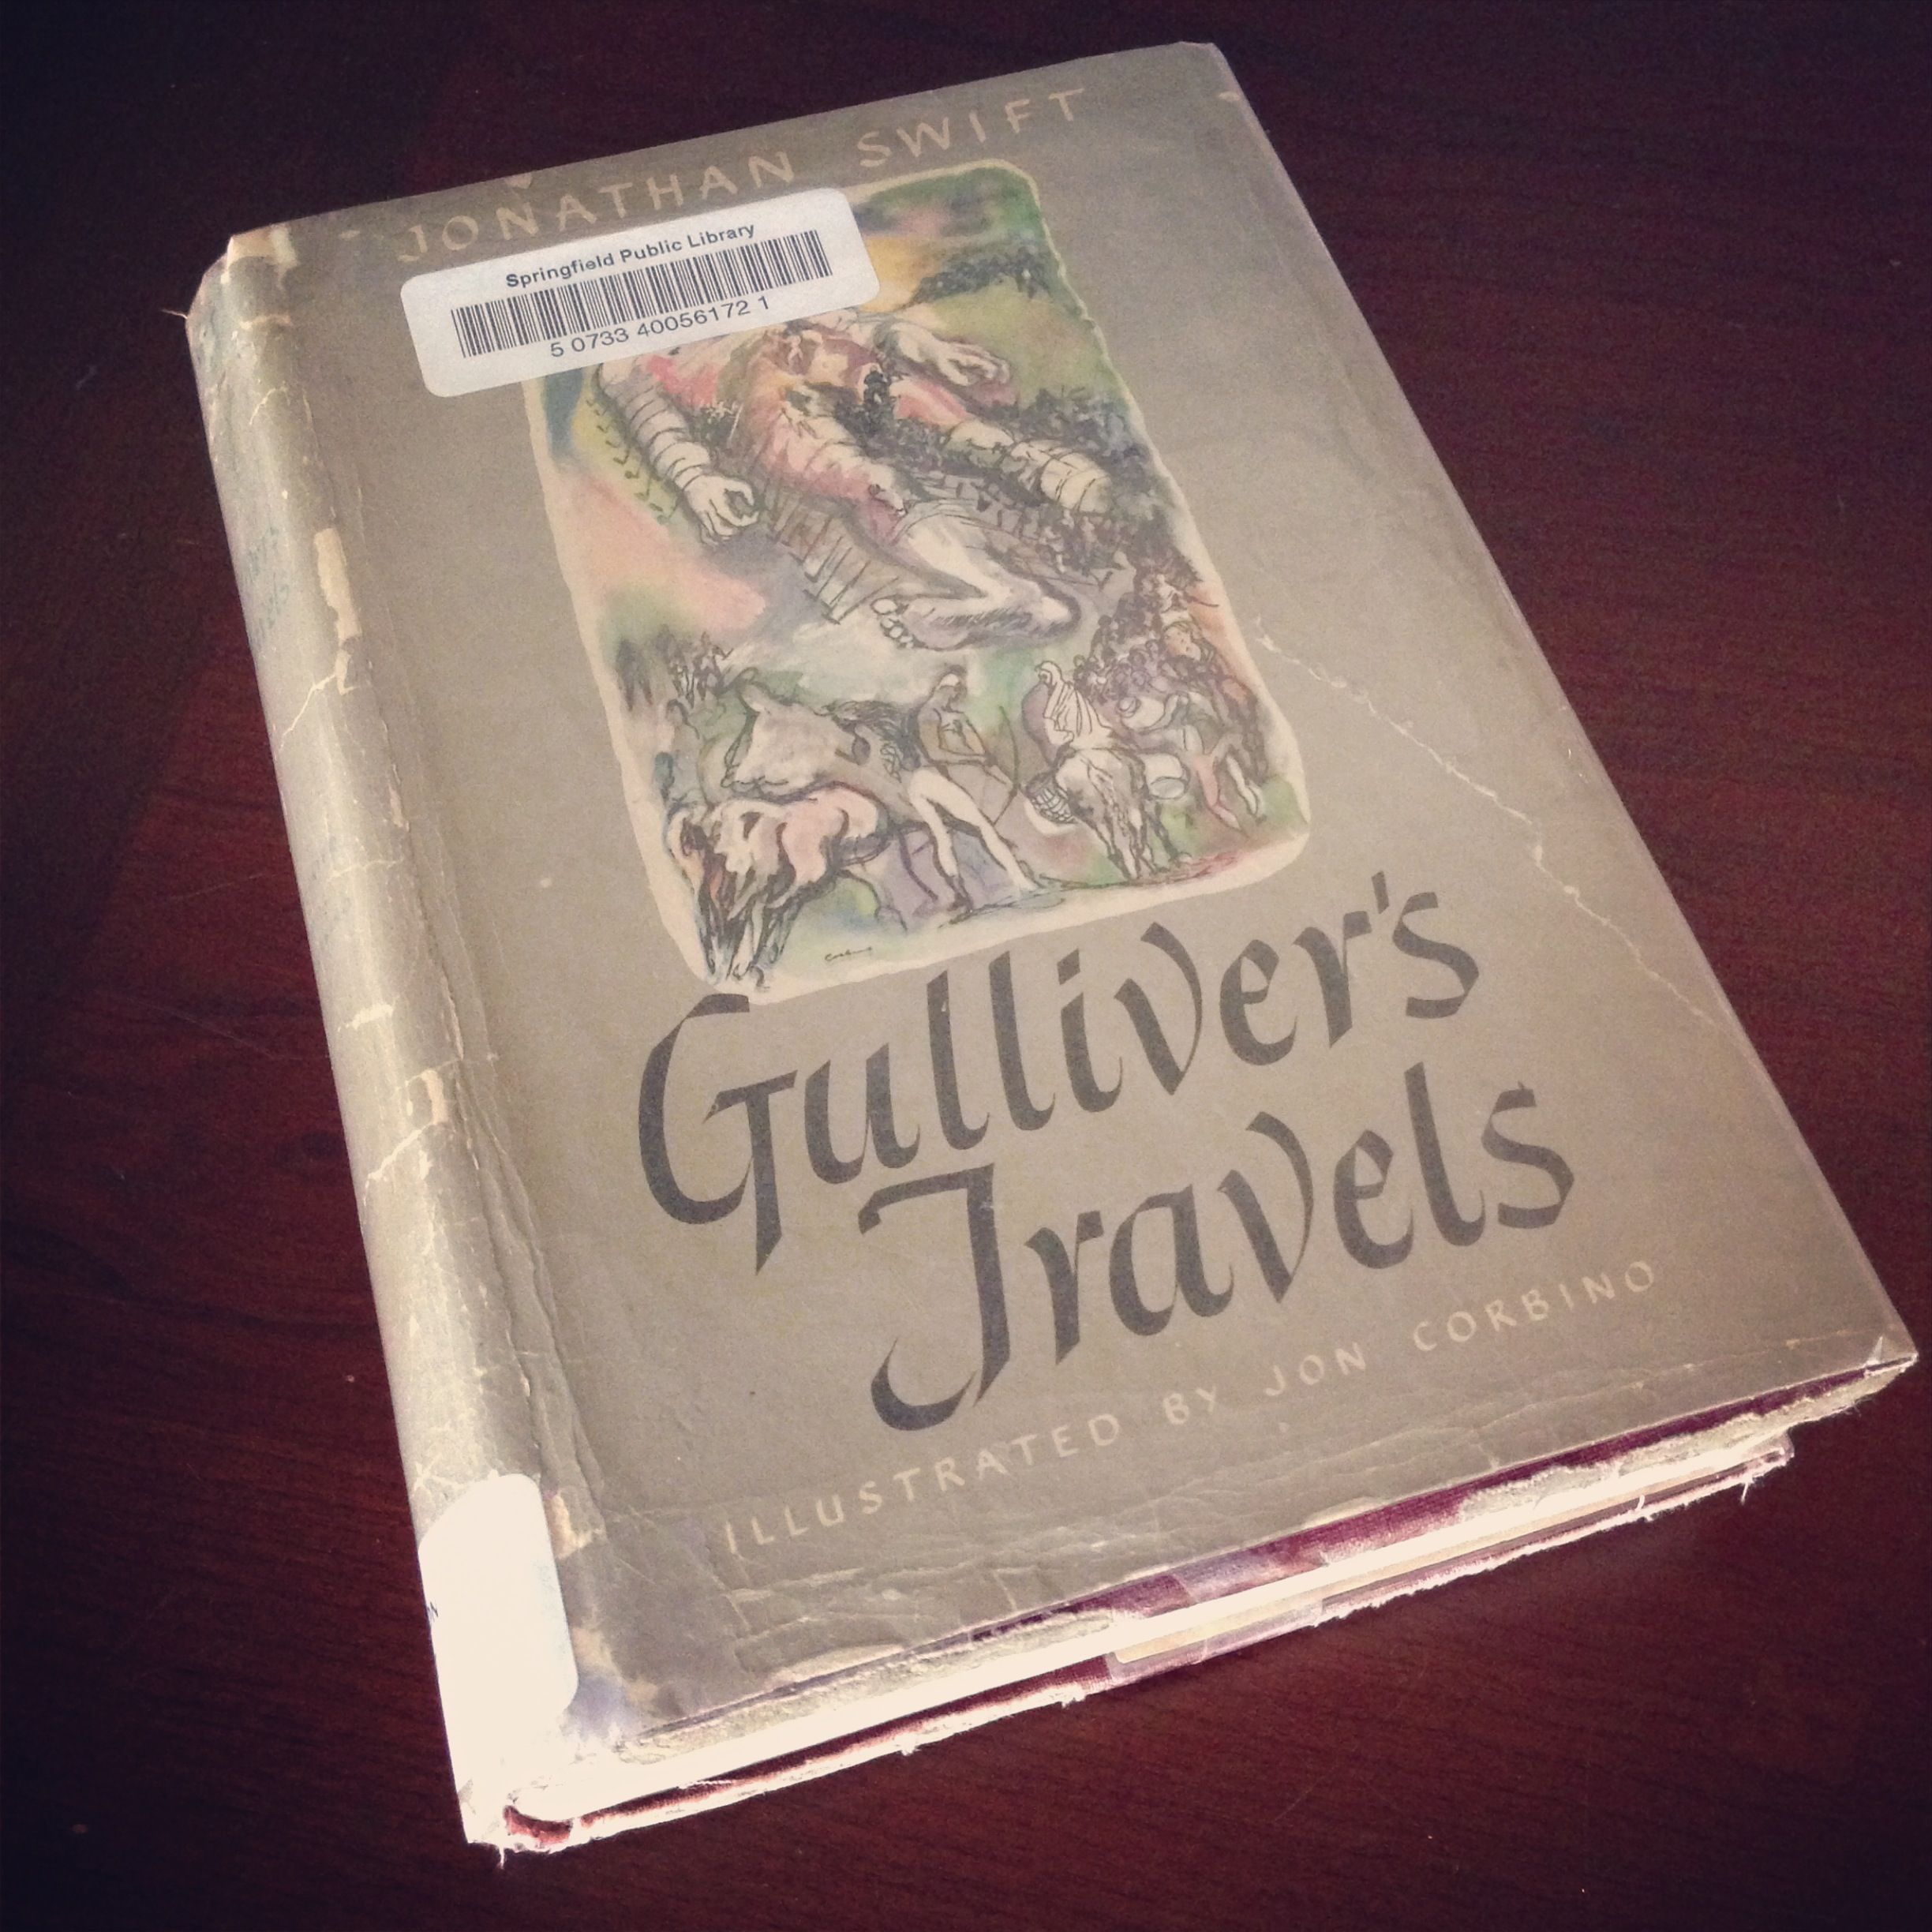 Gullivers travels by jonathan swift with images